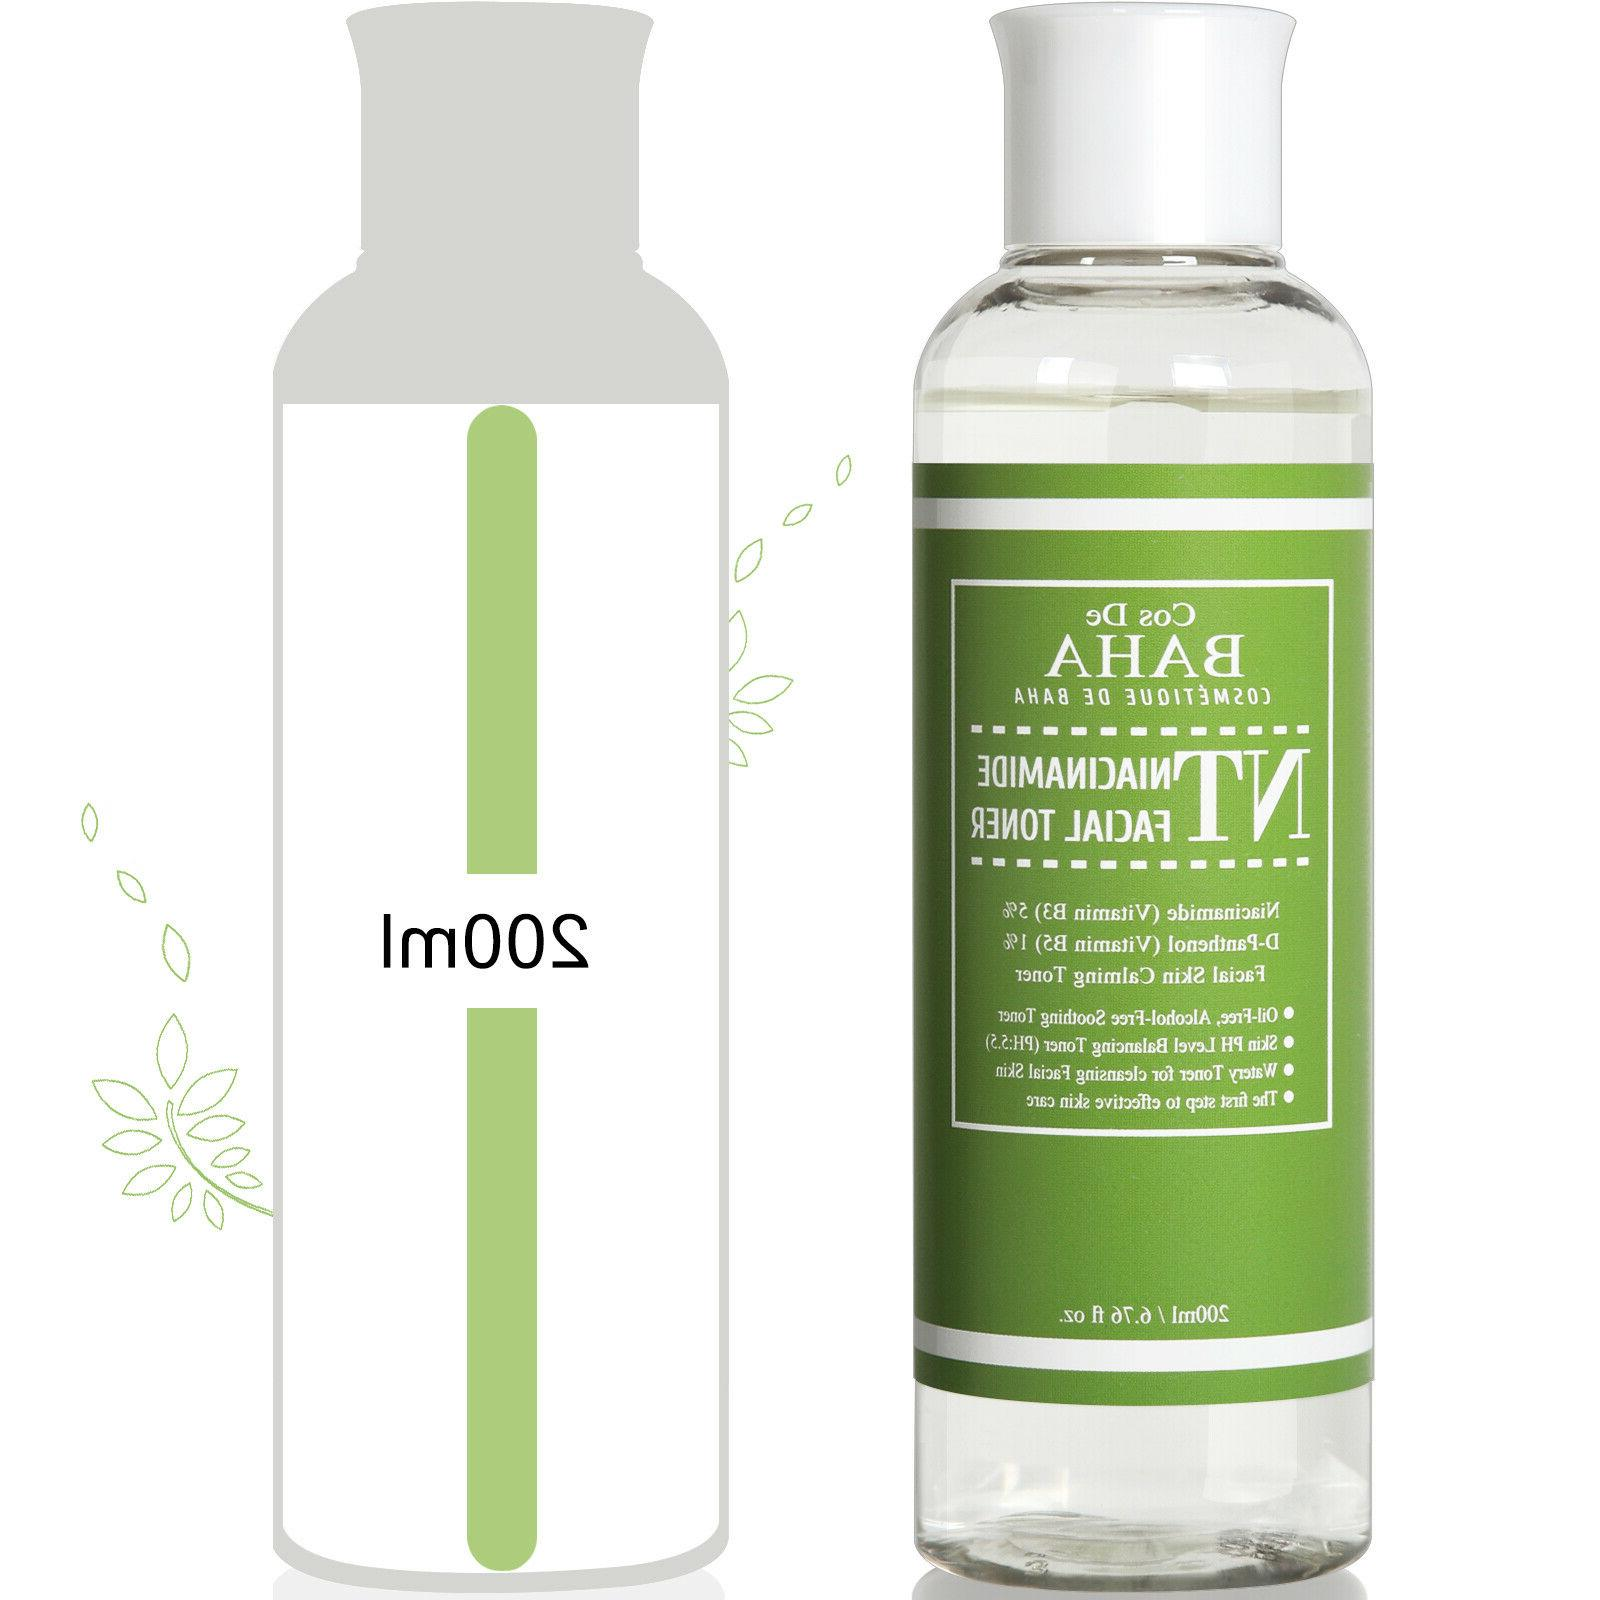 Facial Clear Niacinamide 5% Hyaluronic Acne